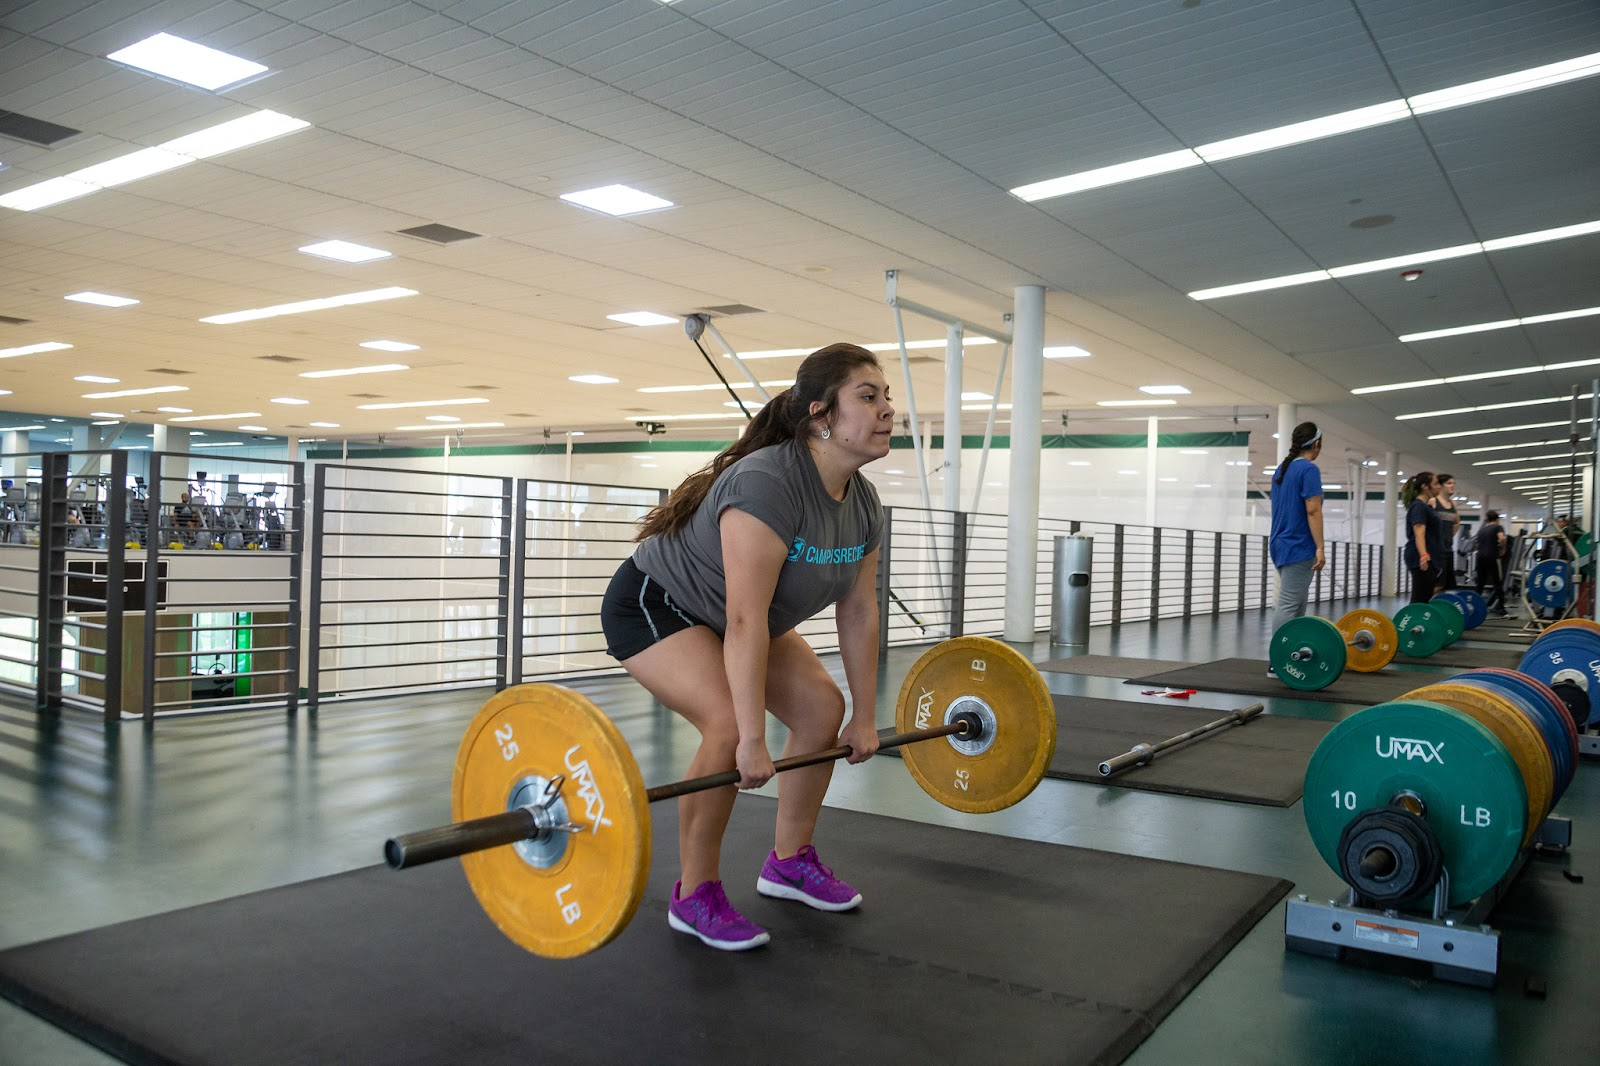 Arellano Rodriguez showing her strength and focus while deadlifting weights